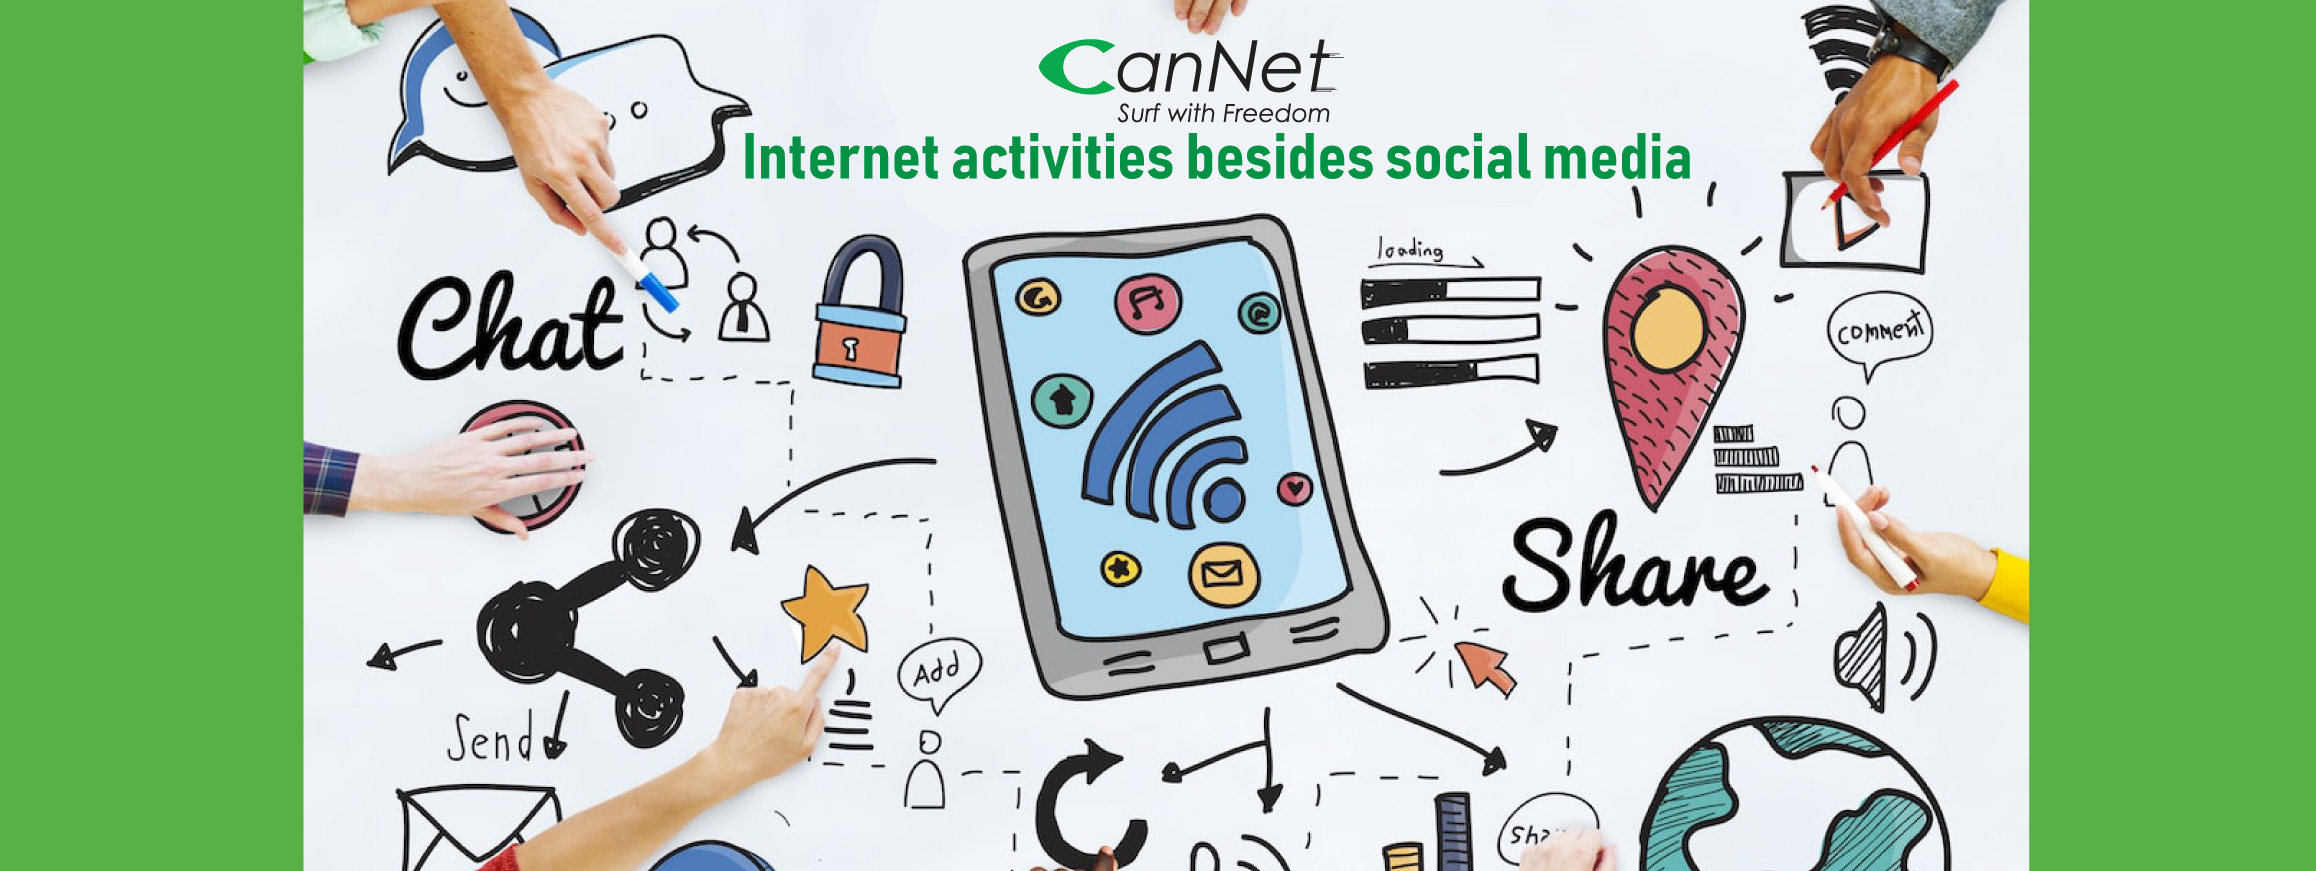 Things to do on the Internet besides social media